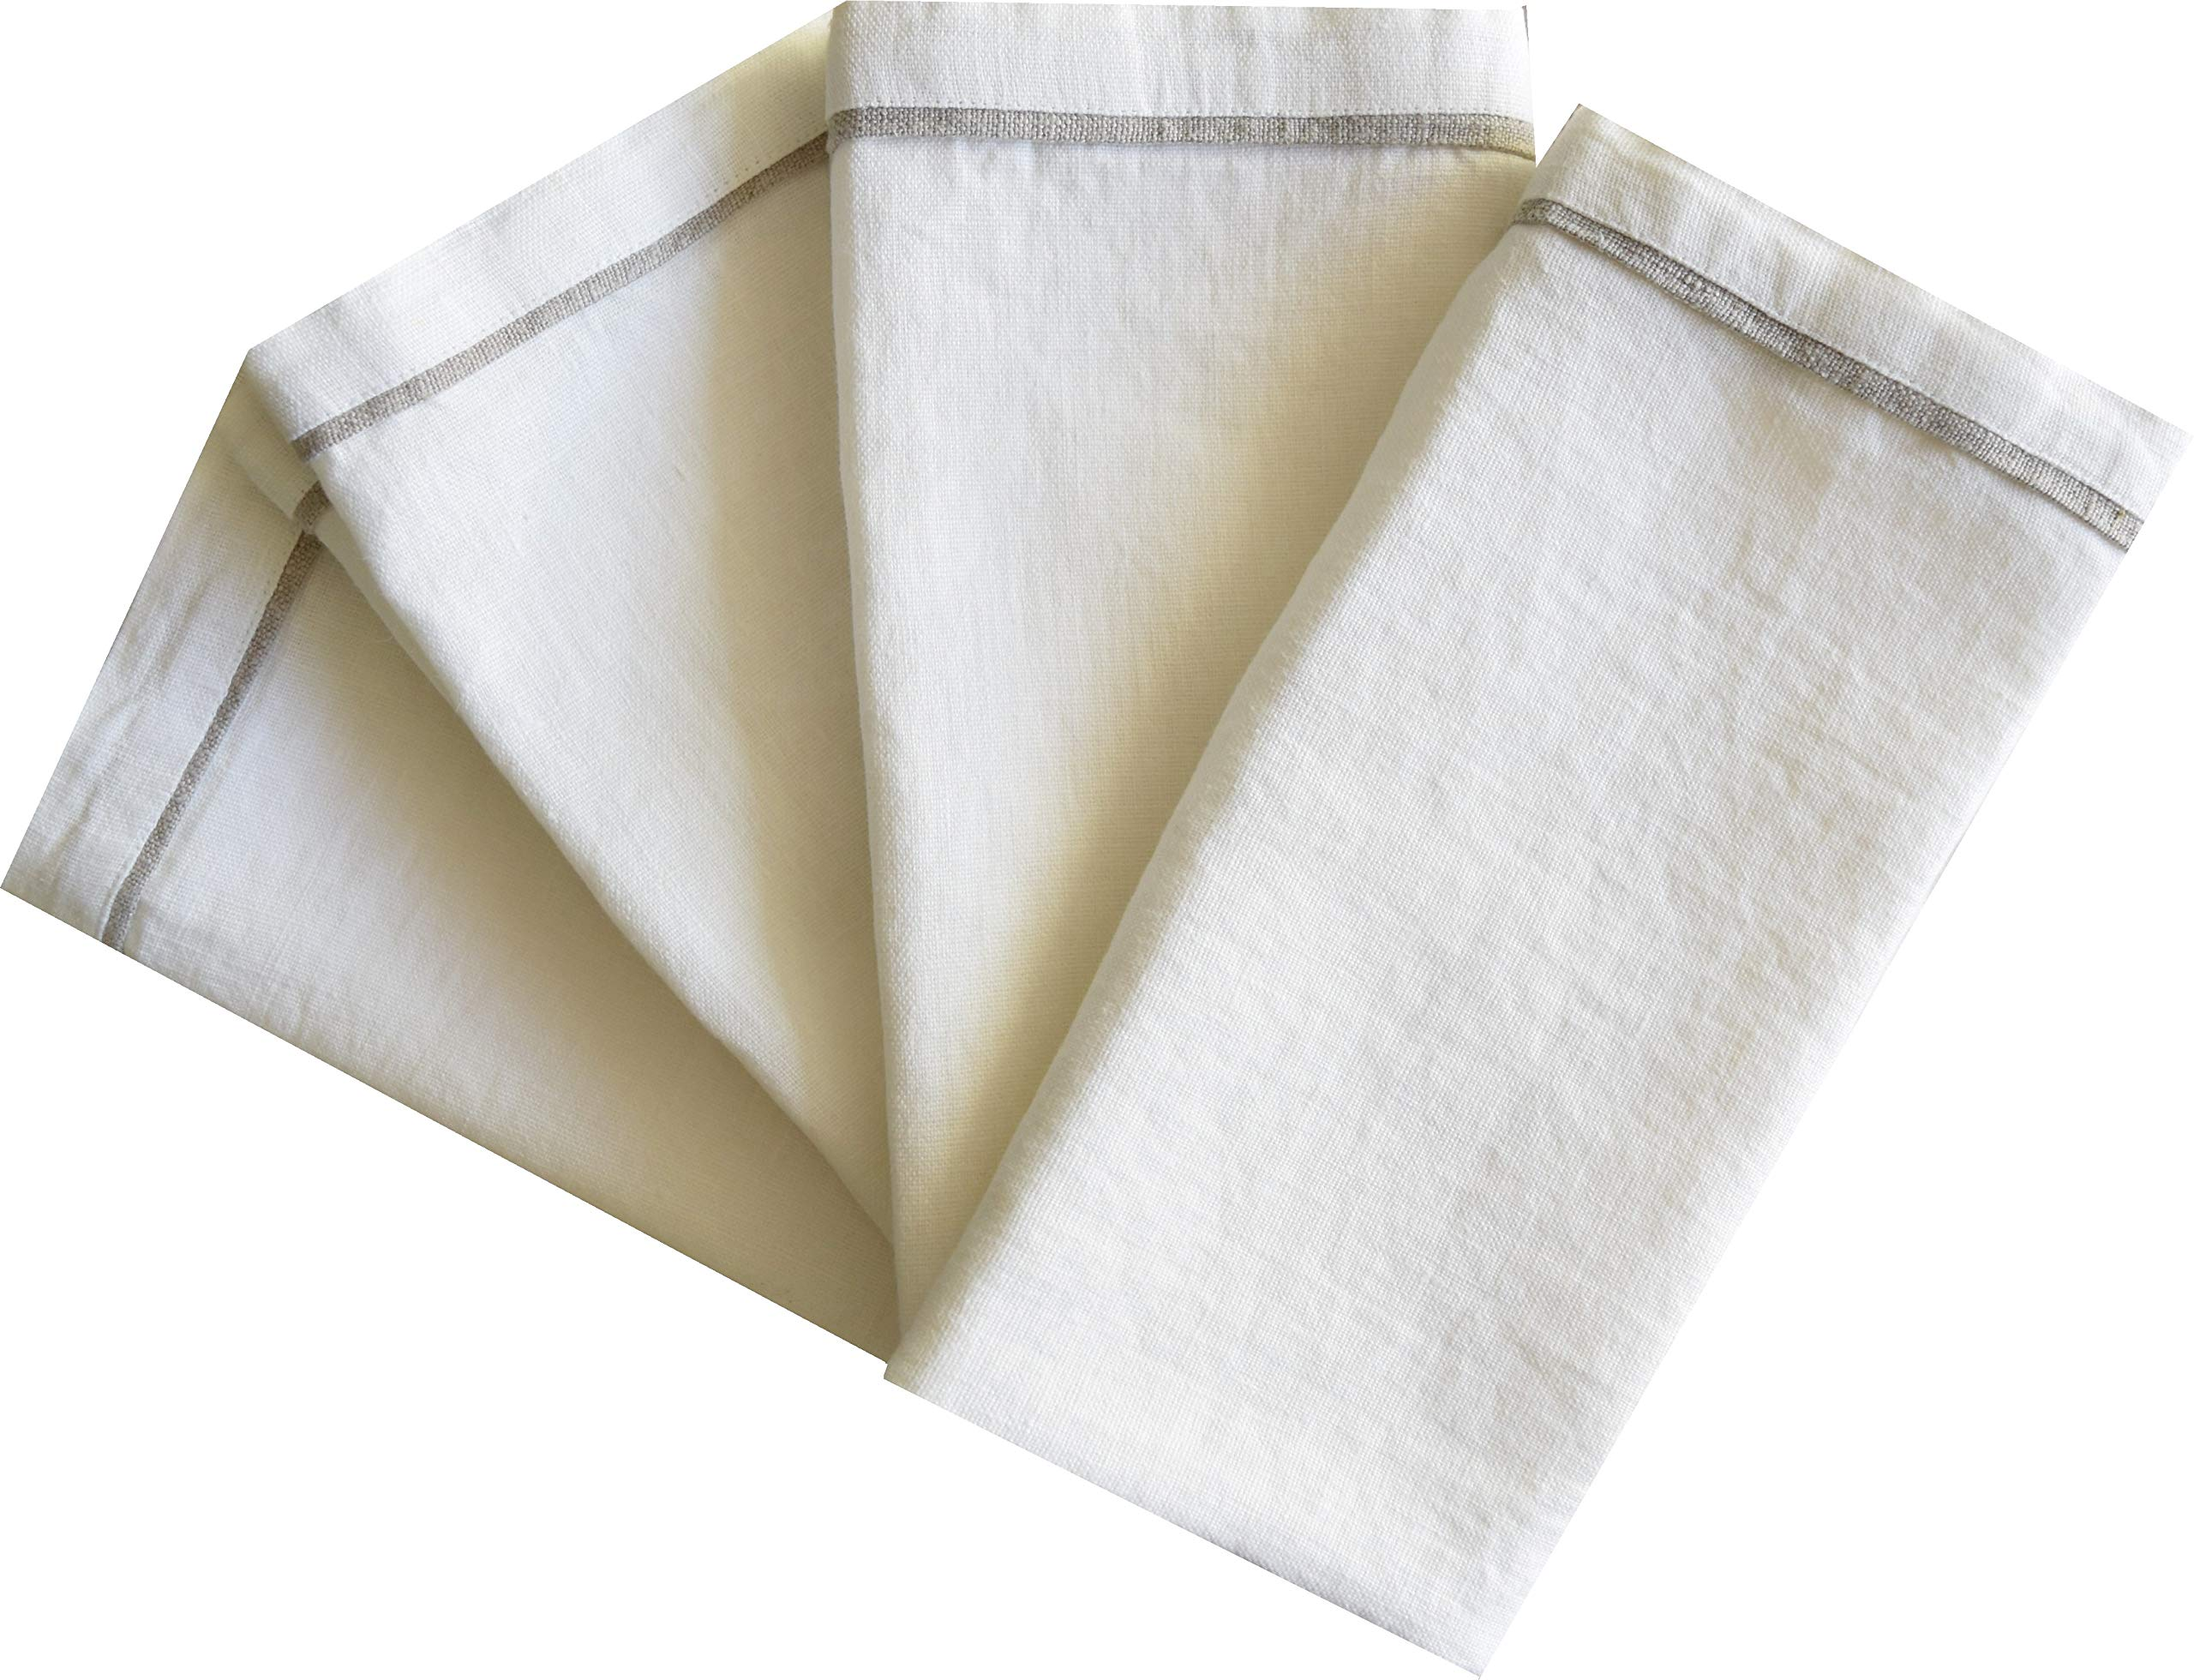 Lyneco White Linen Dinner Napkins - 22 x 22 inch (Large) - Pack of 4-100% Pure European Flax - Kitchen Handcrafted Table Napkins, Machine Washable with Mitered Corners